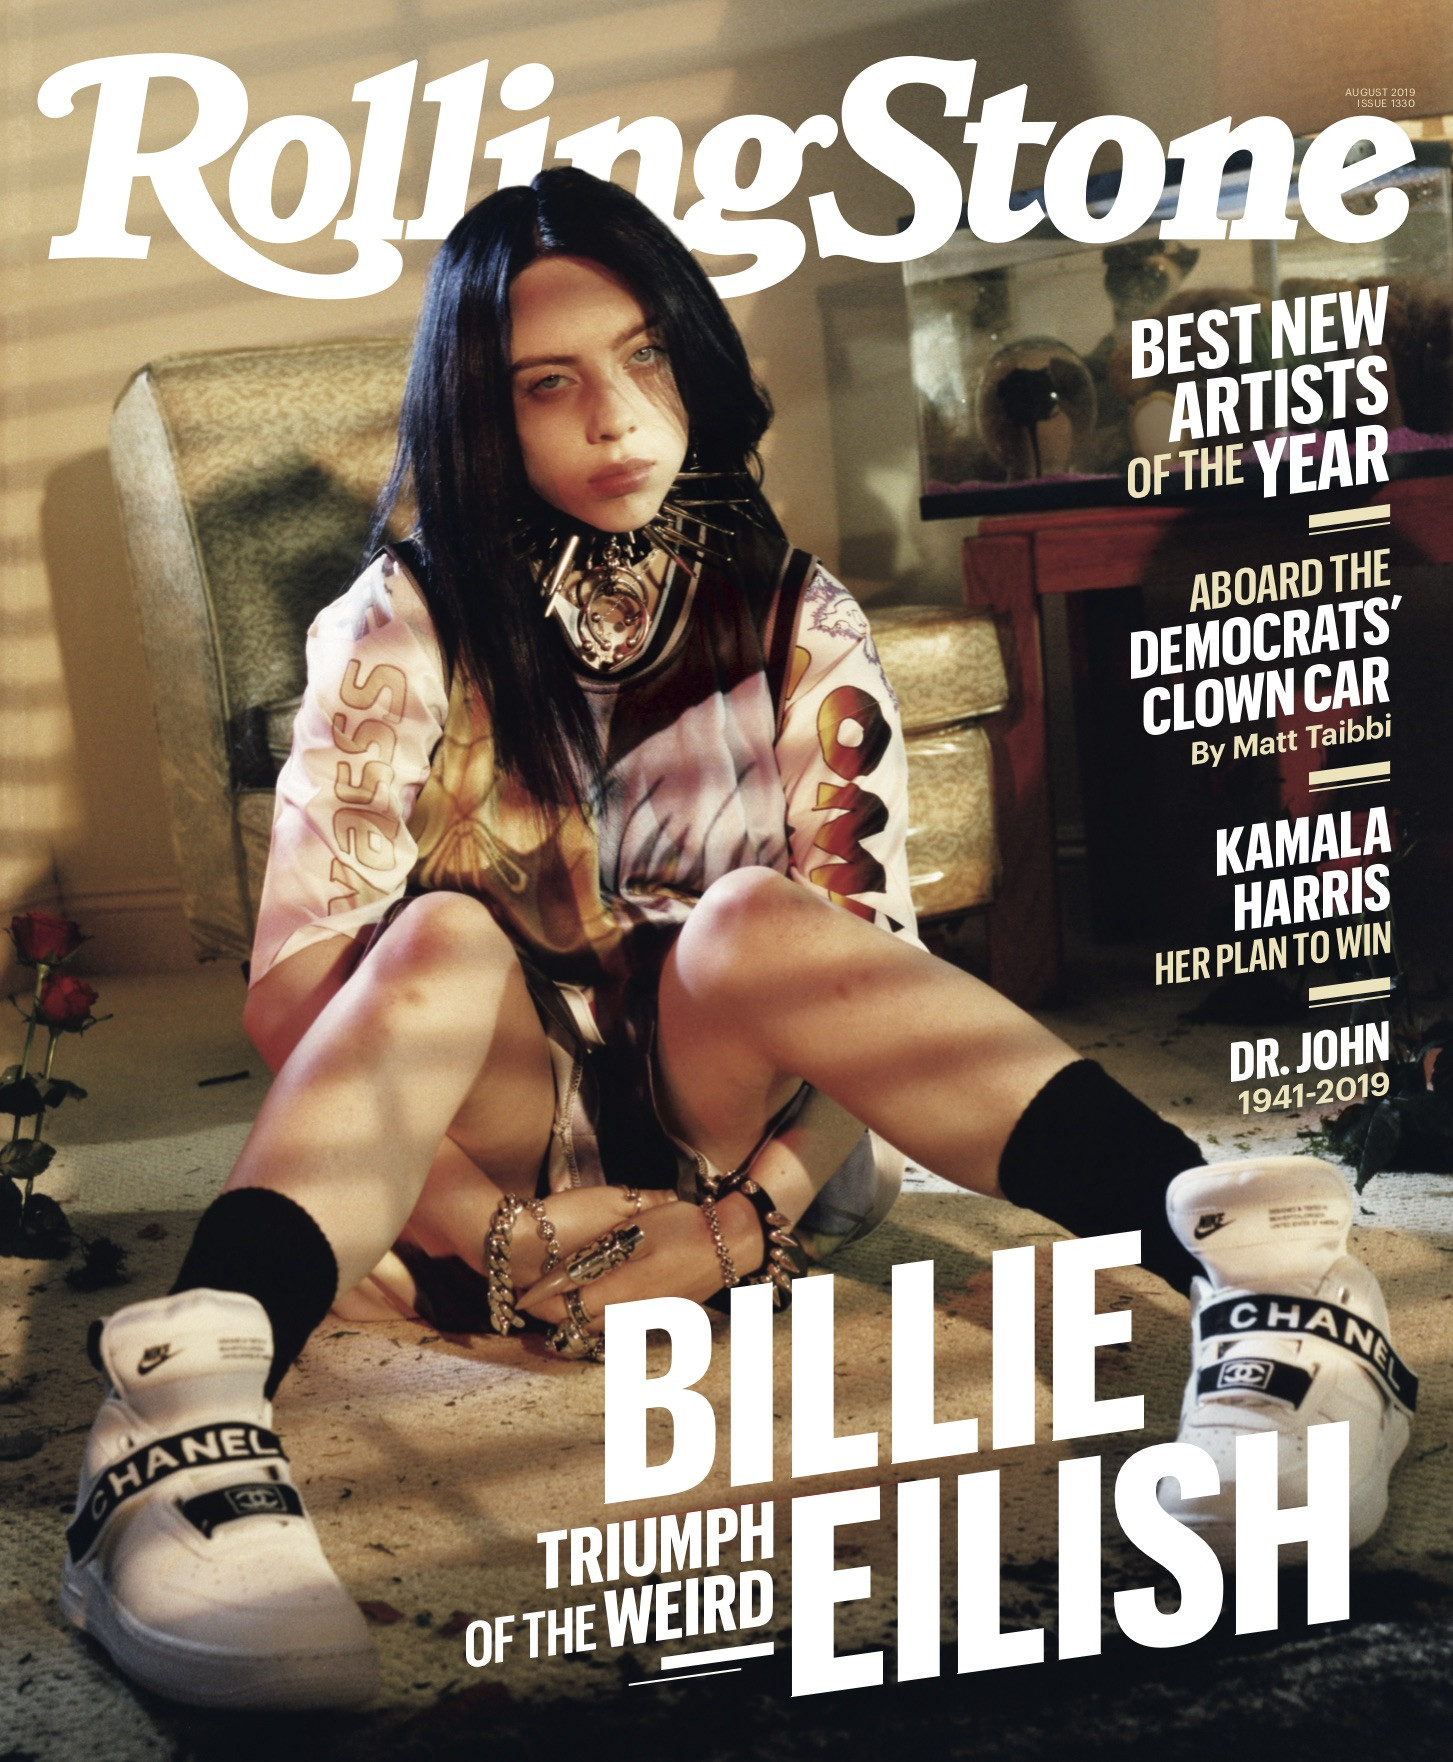 Billie Eilish, Rolling Stone, August 2019